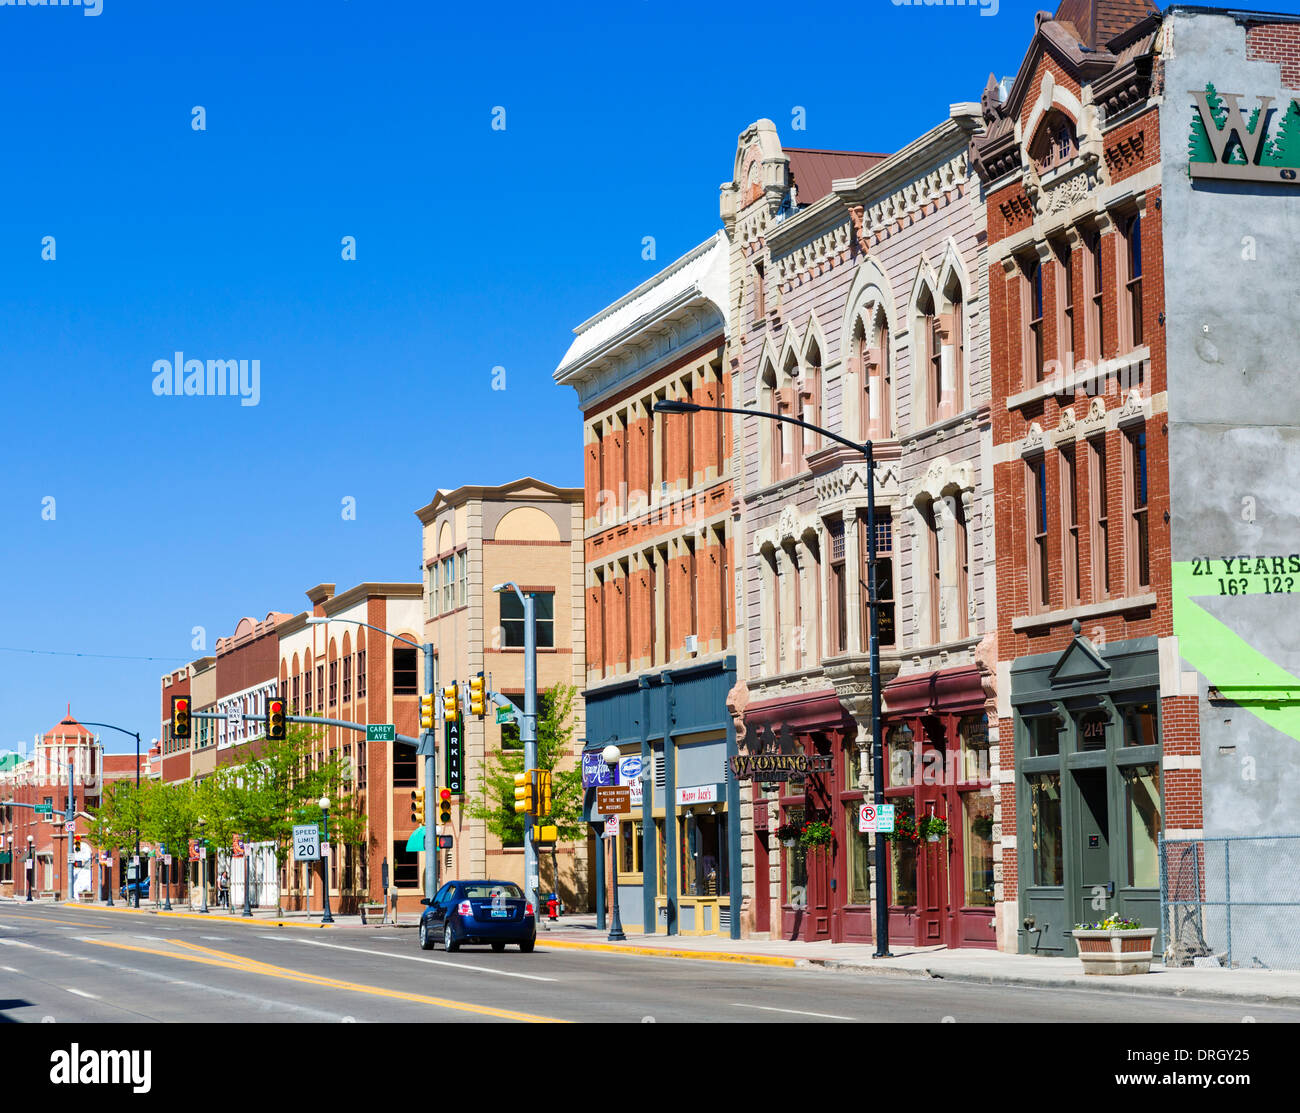 76 Best Images About Historic Downtown Storefronts On: Historic Buildings On Lincoln Highway / West 16th Street